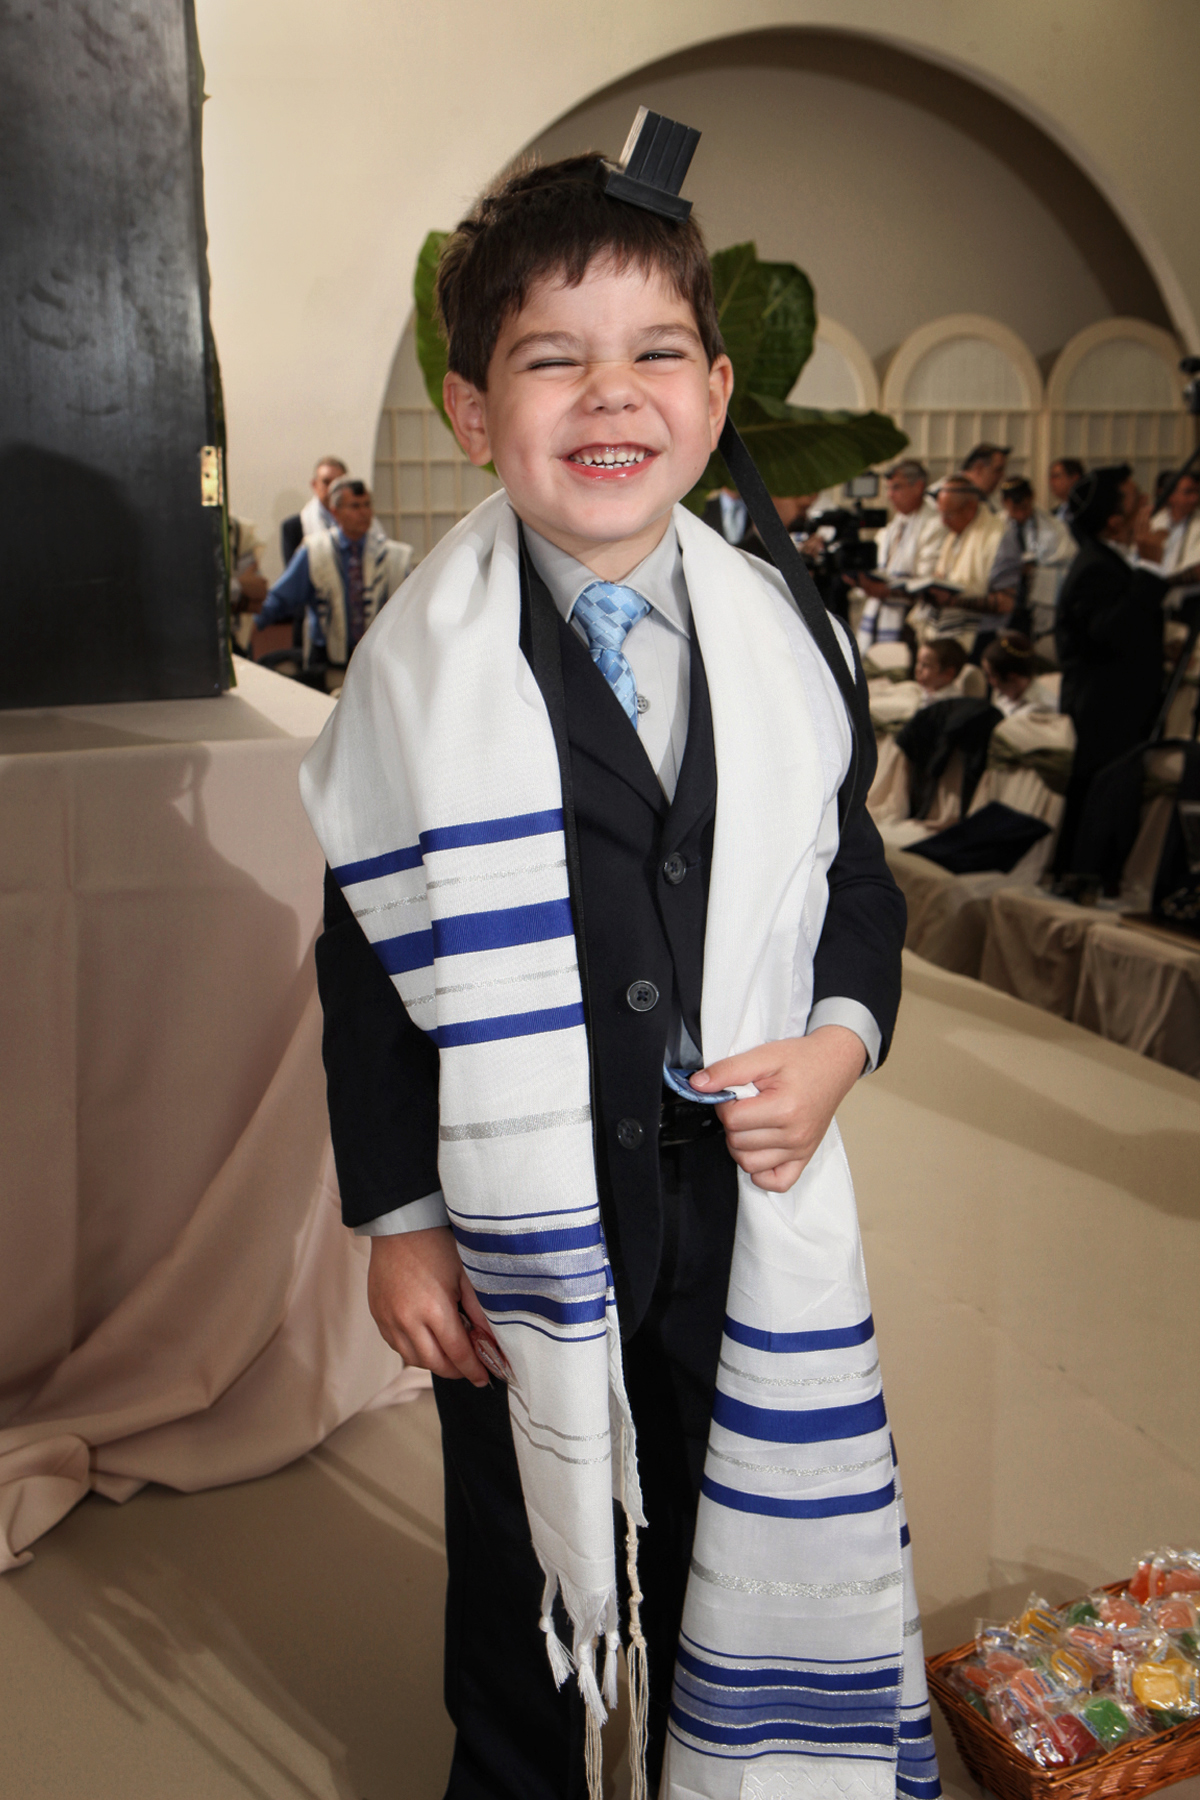 04-event-jewish-cute-tallit-orlando-jcc-photographer.JPG